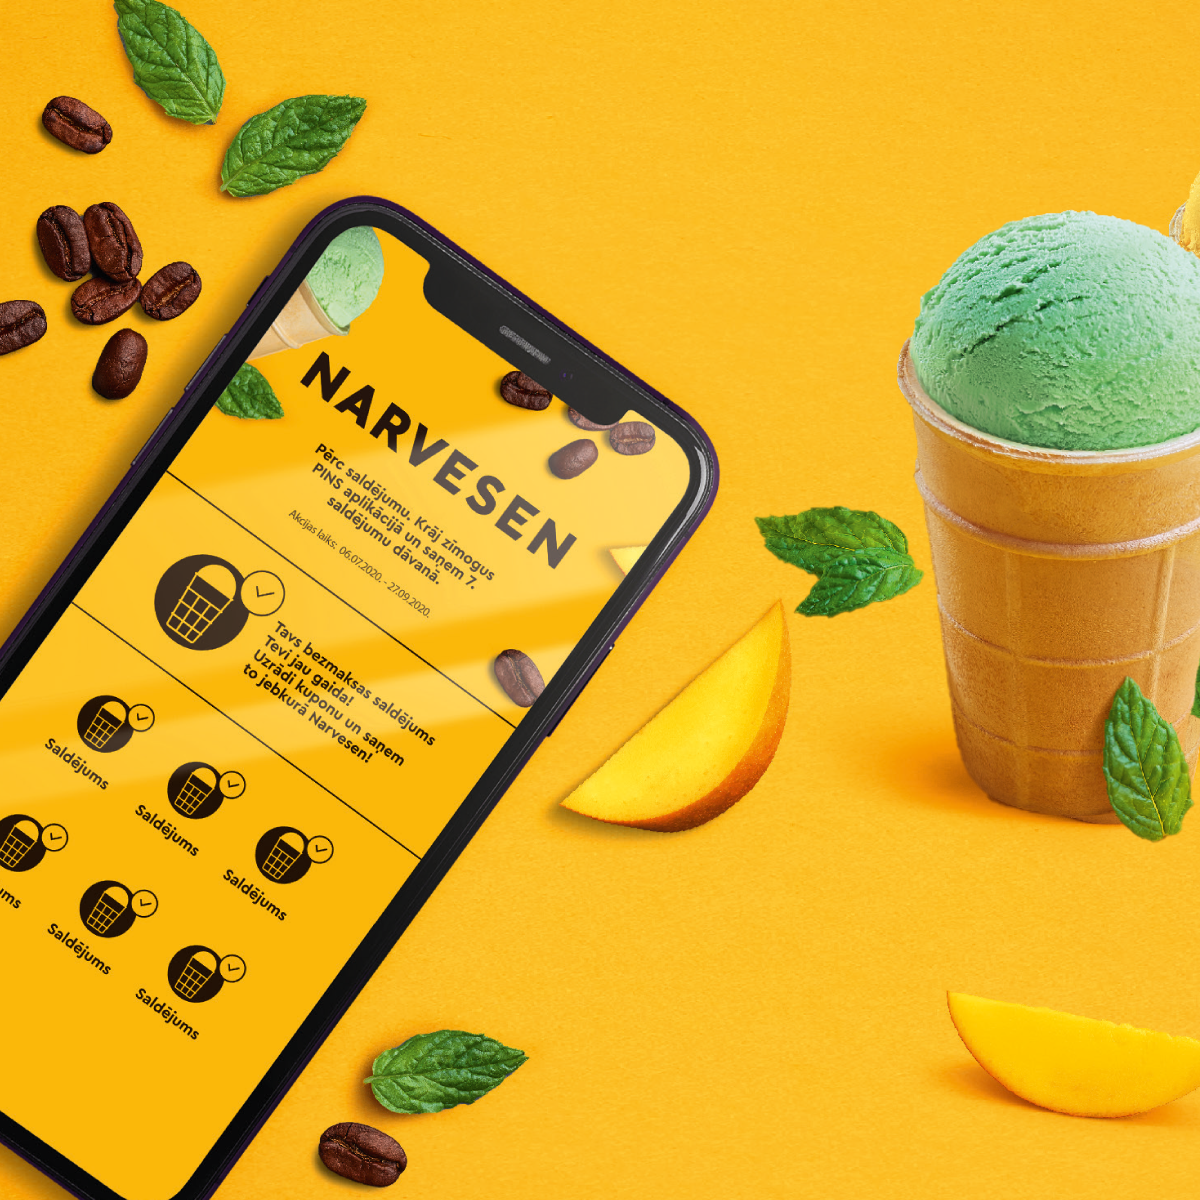 Buy any ice cream at Narvesen, collect stamps in PINS app and get the 7th ice cream as a gift. image